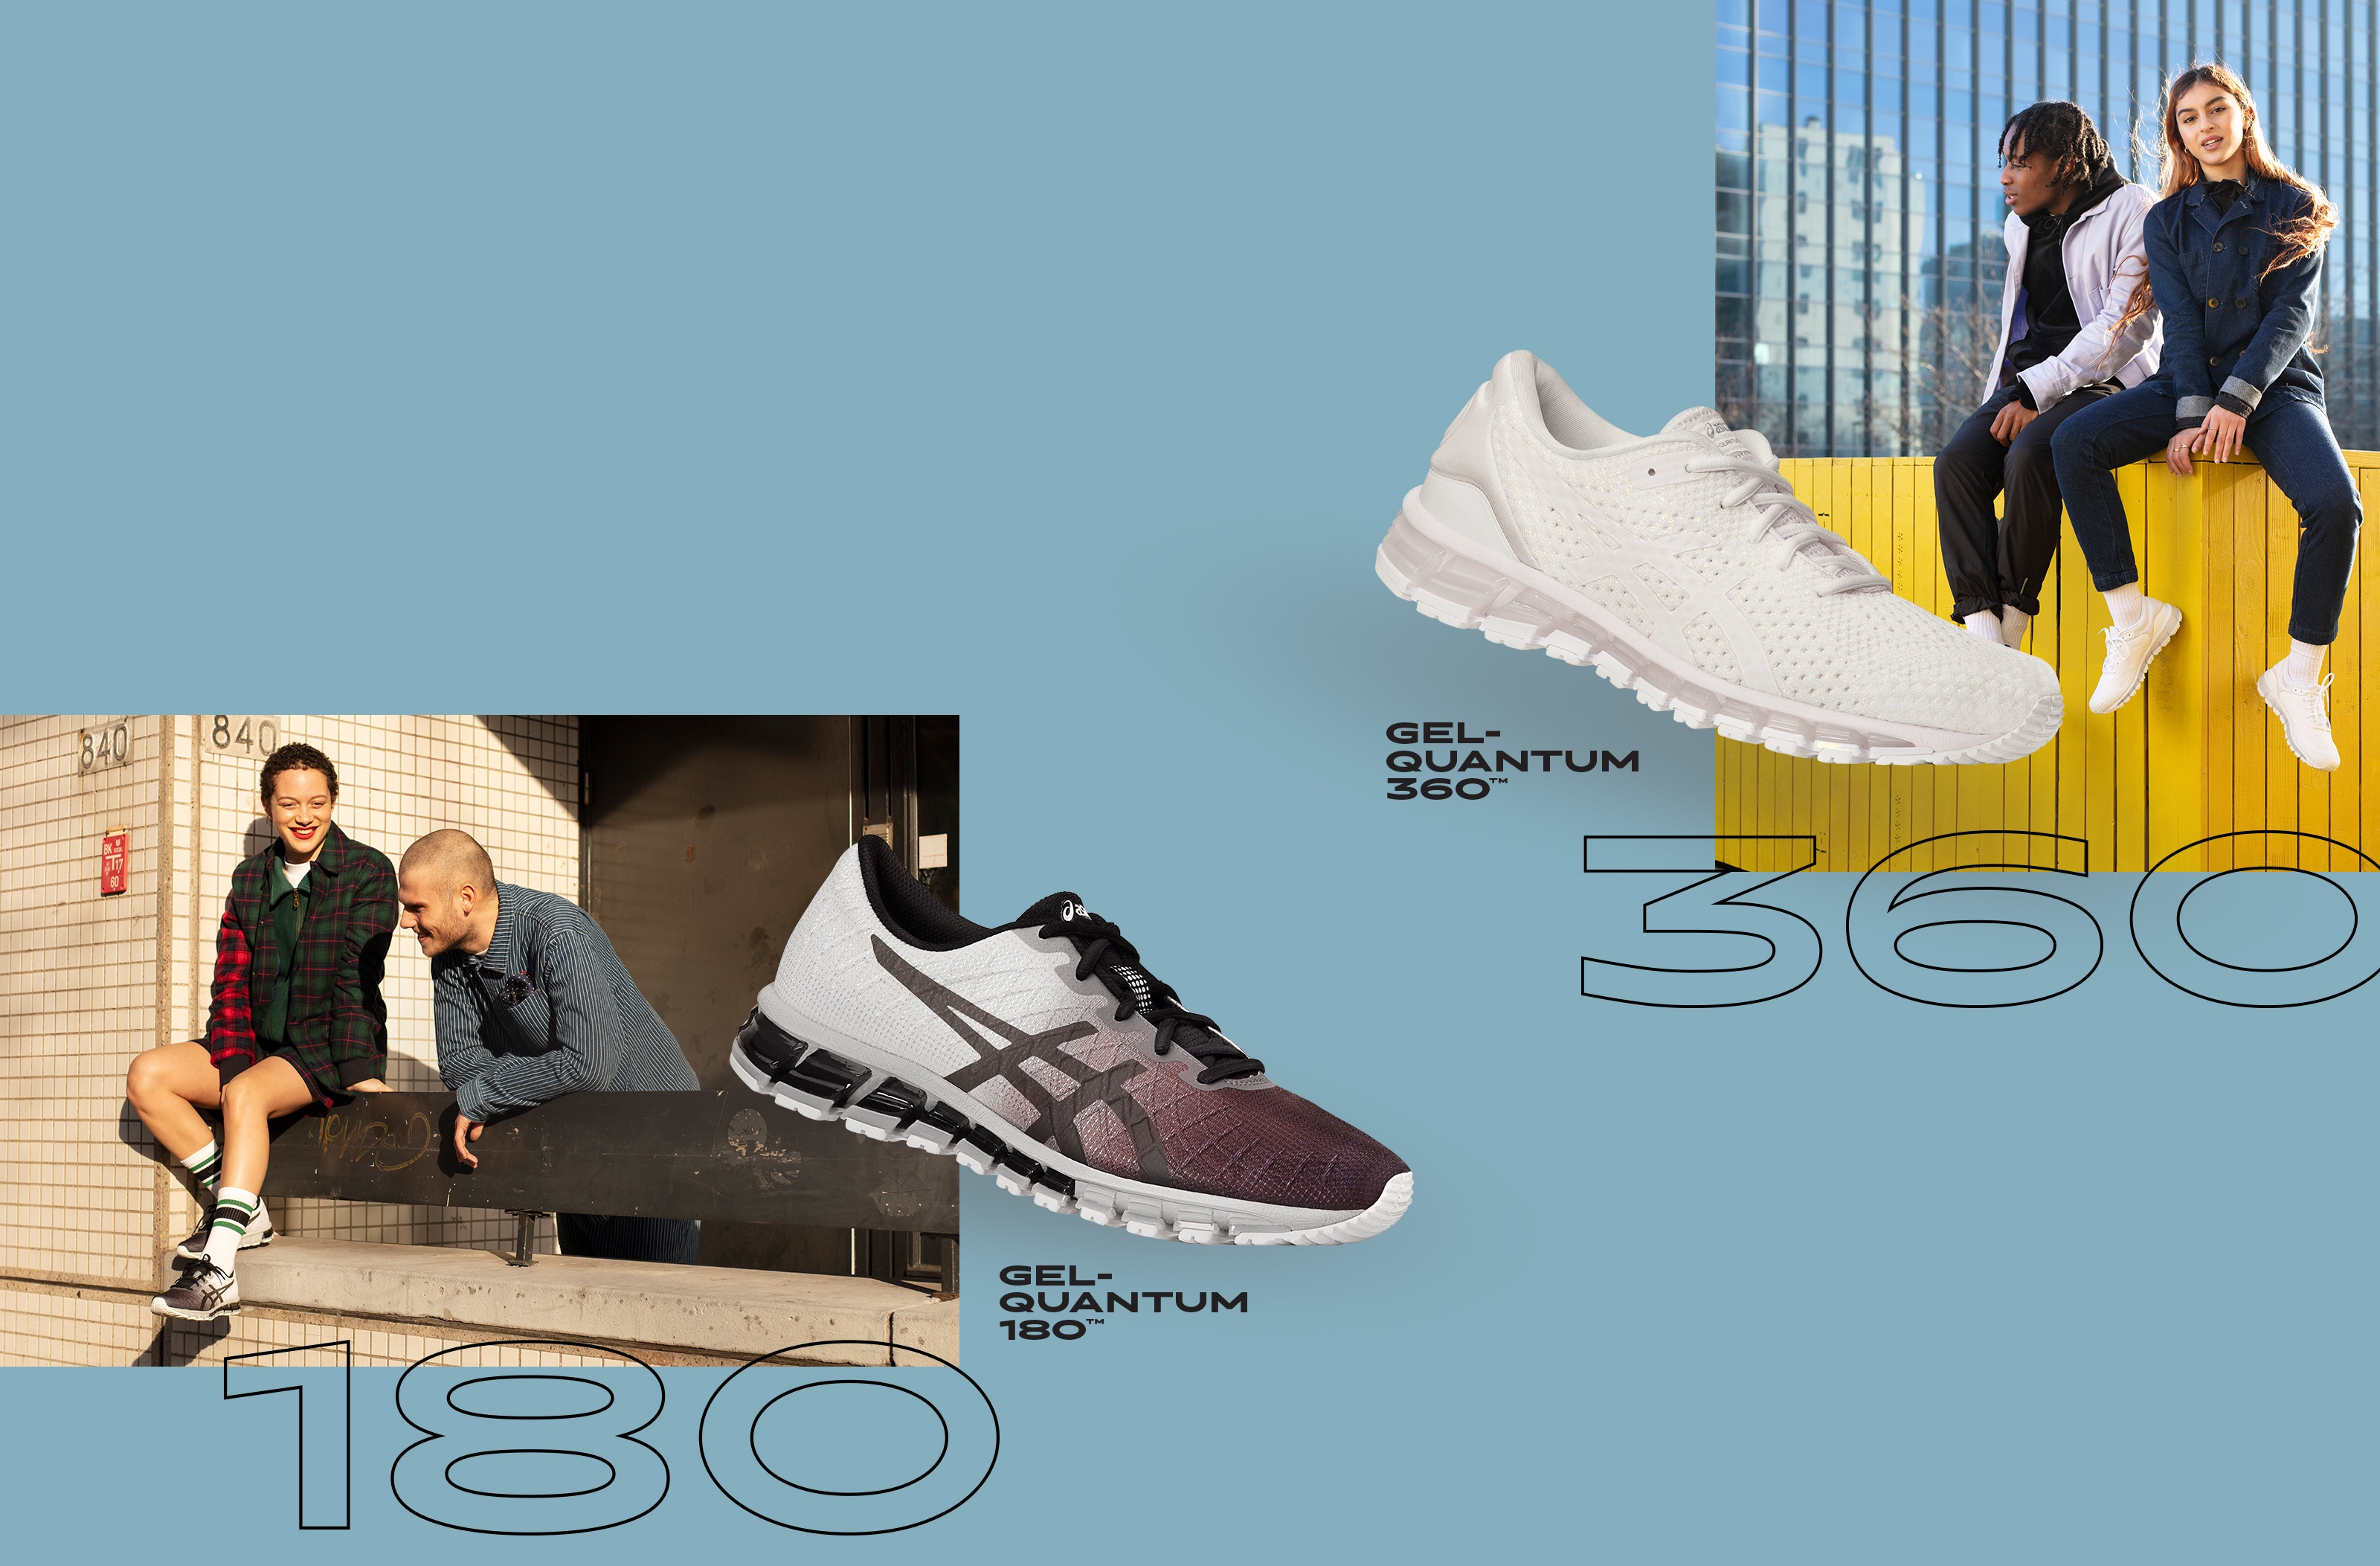 White and black running shoes over laid on image of men and women wearing the Gel-Quantum 360™ and Gel- Quantum 180™